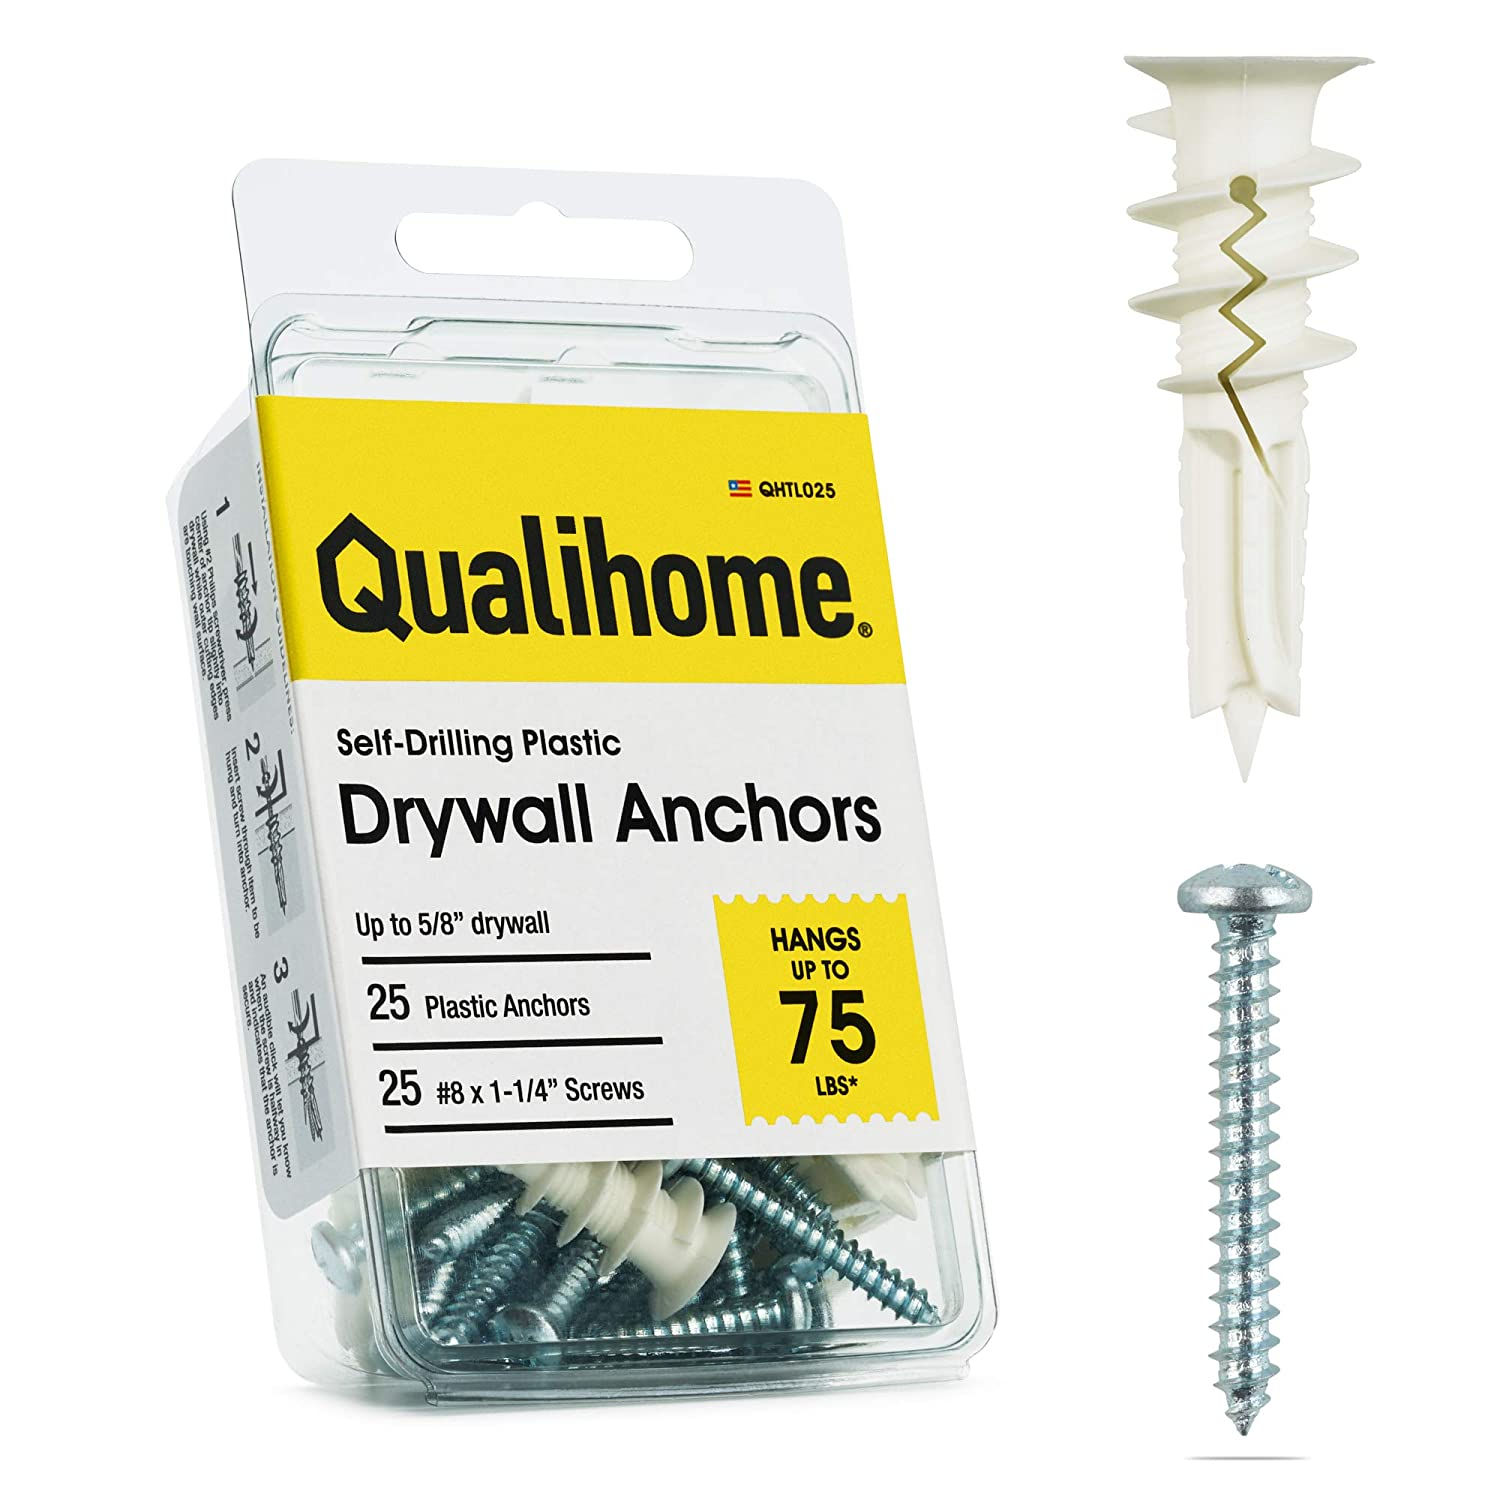 DryWall Anchor Screws (Product Only, No Installation)